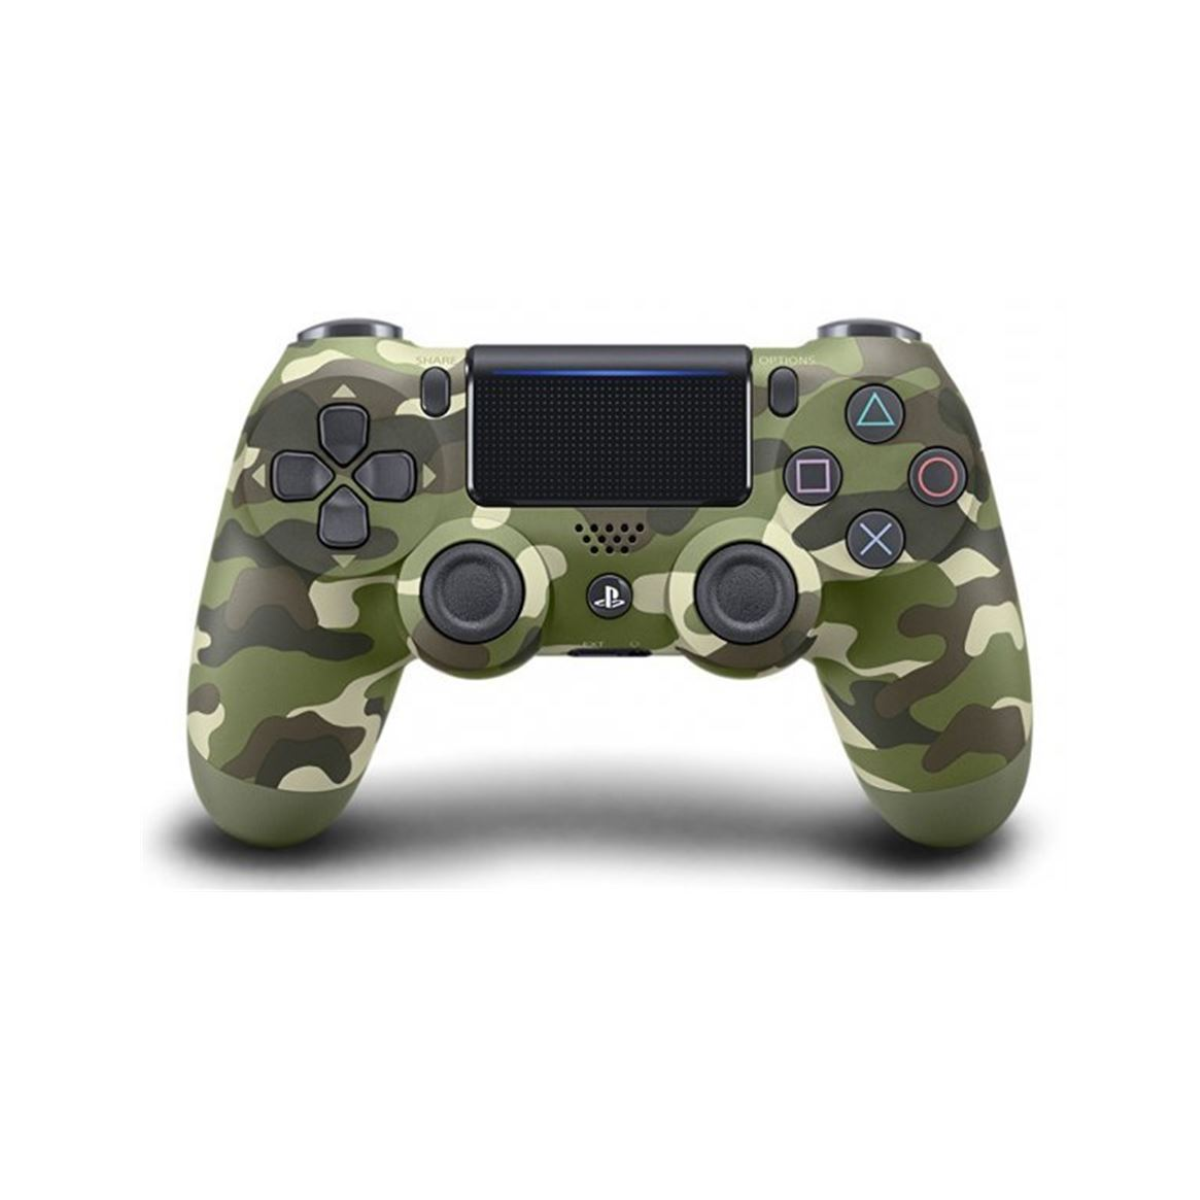 Mando Playstation 4 Camuflaje